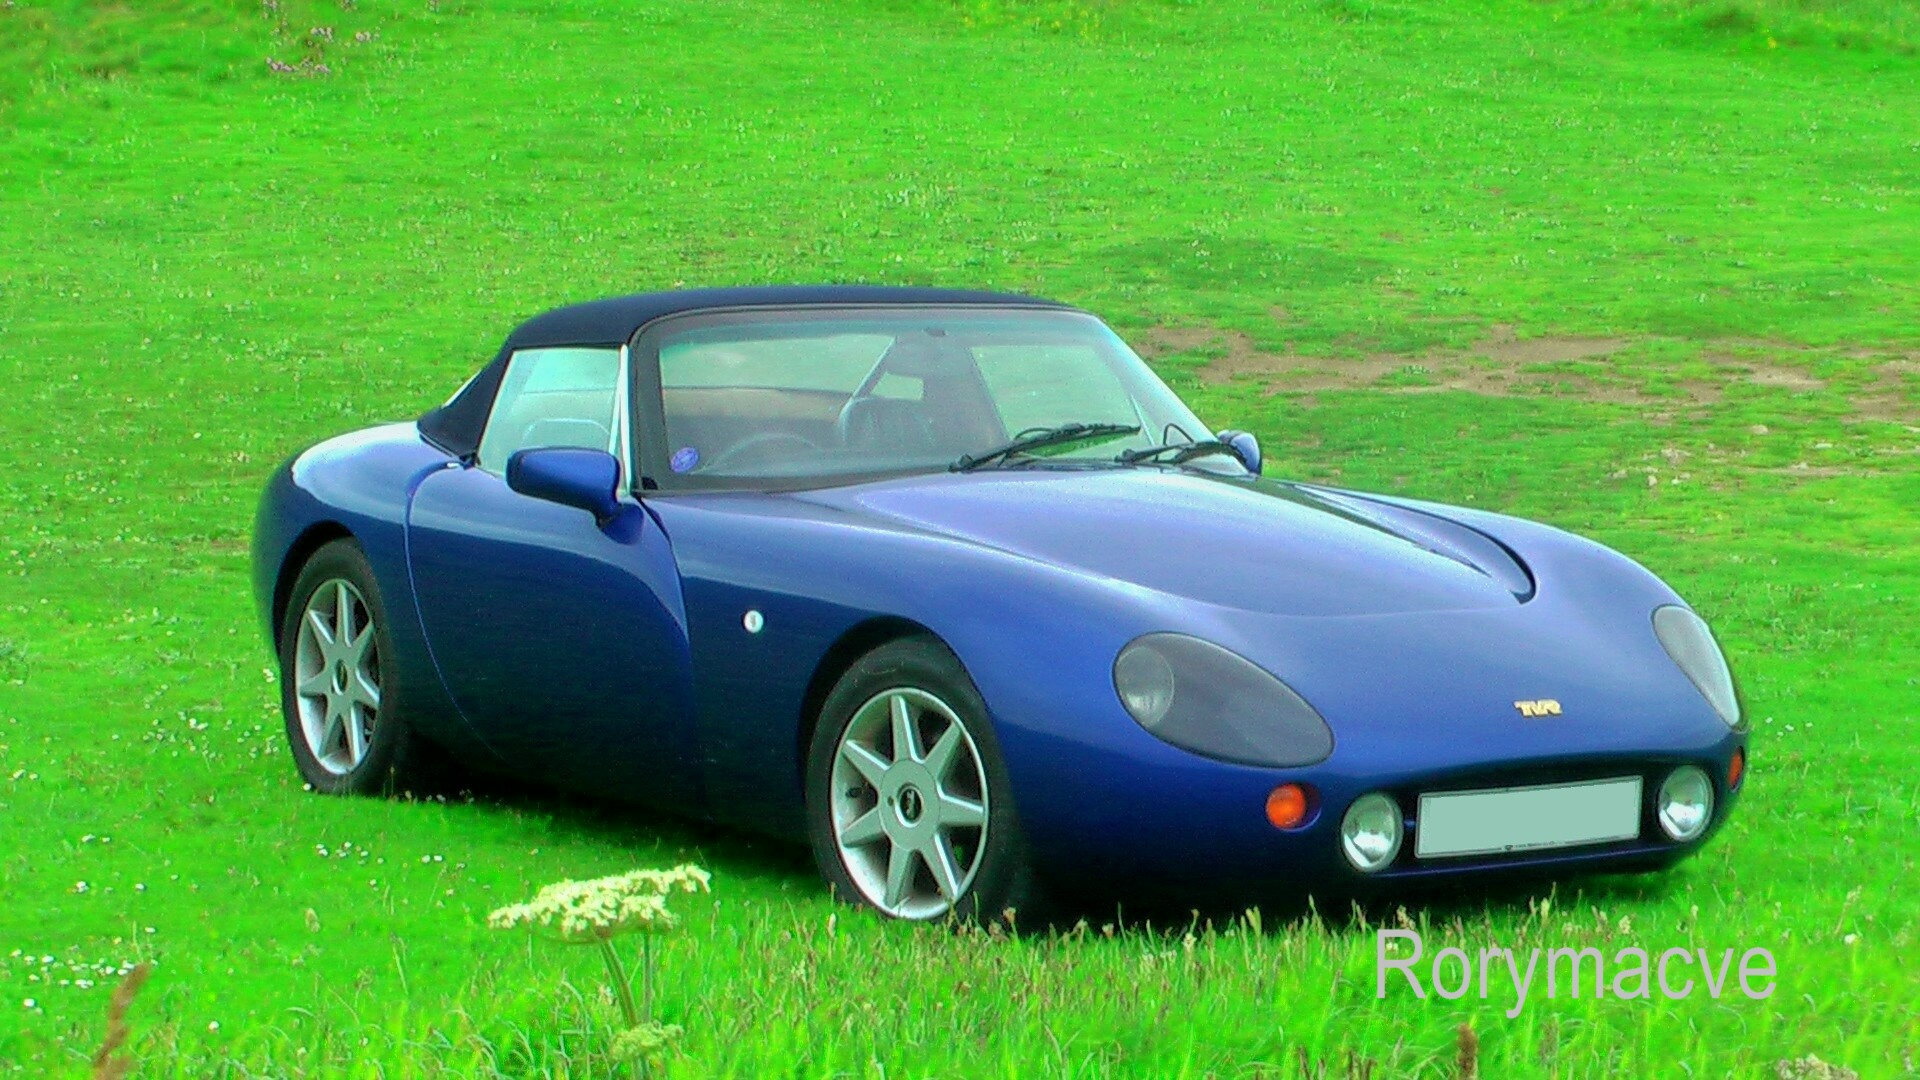 1995 TVR Griffith #14